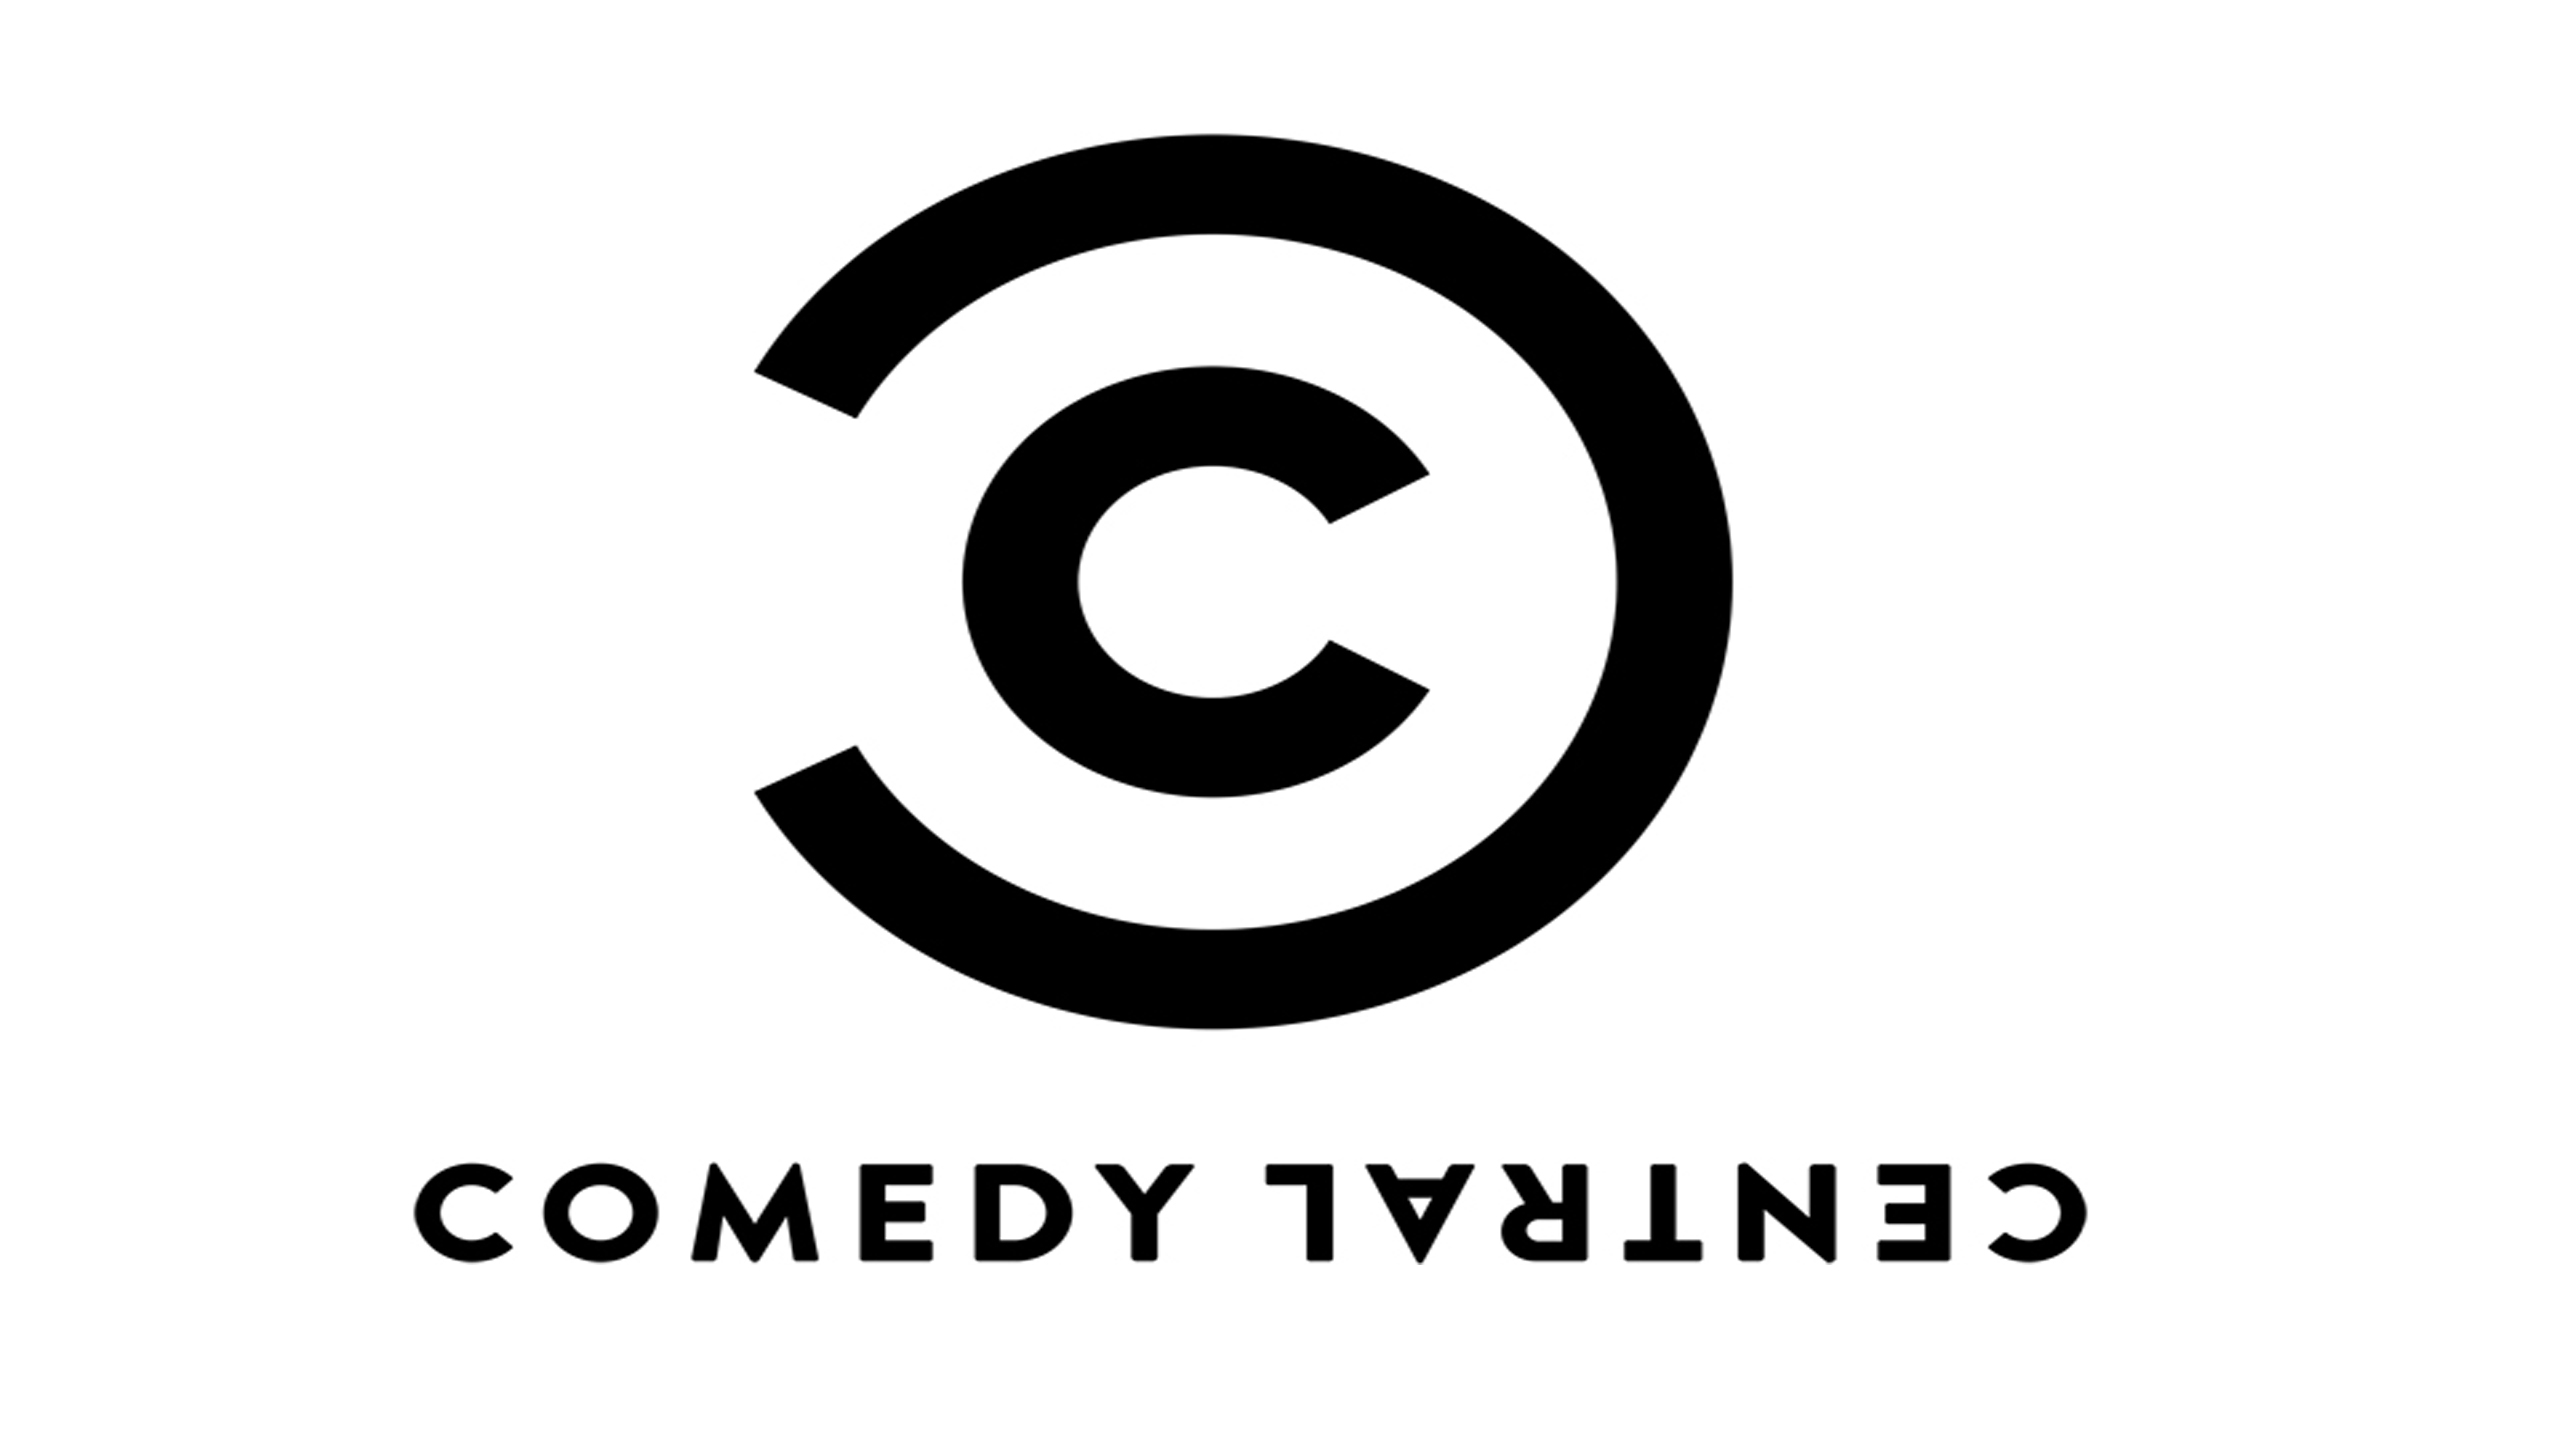 Comedy Central featured